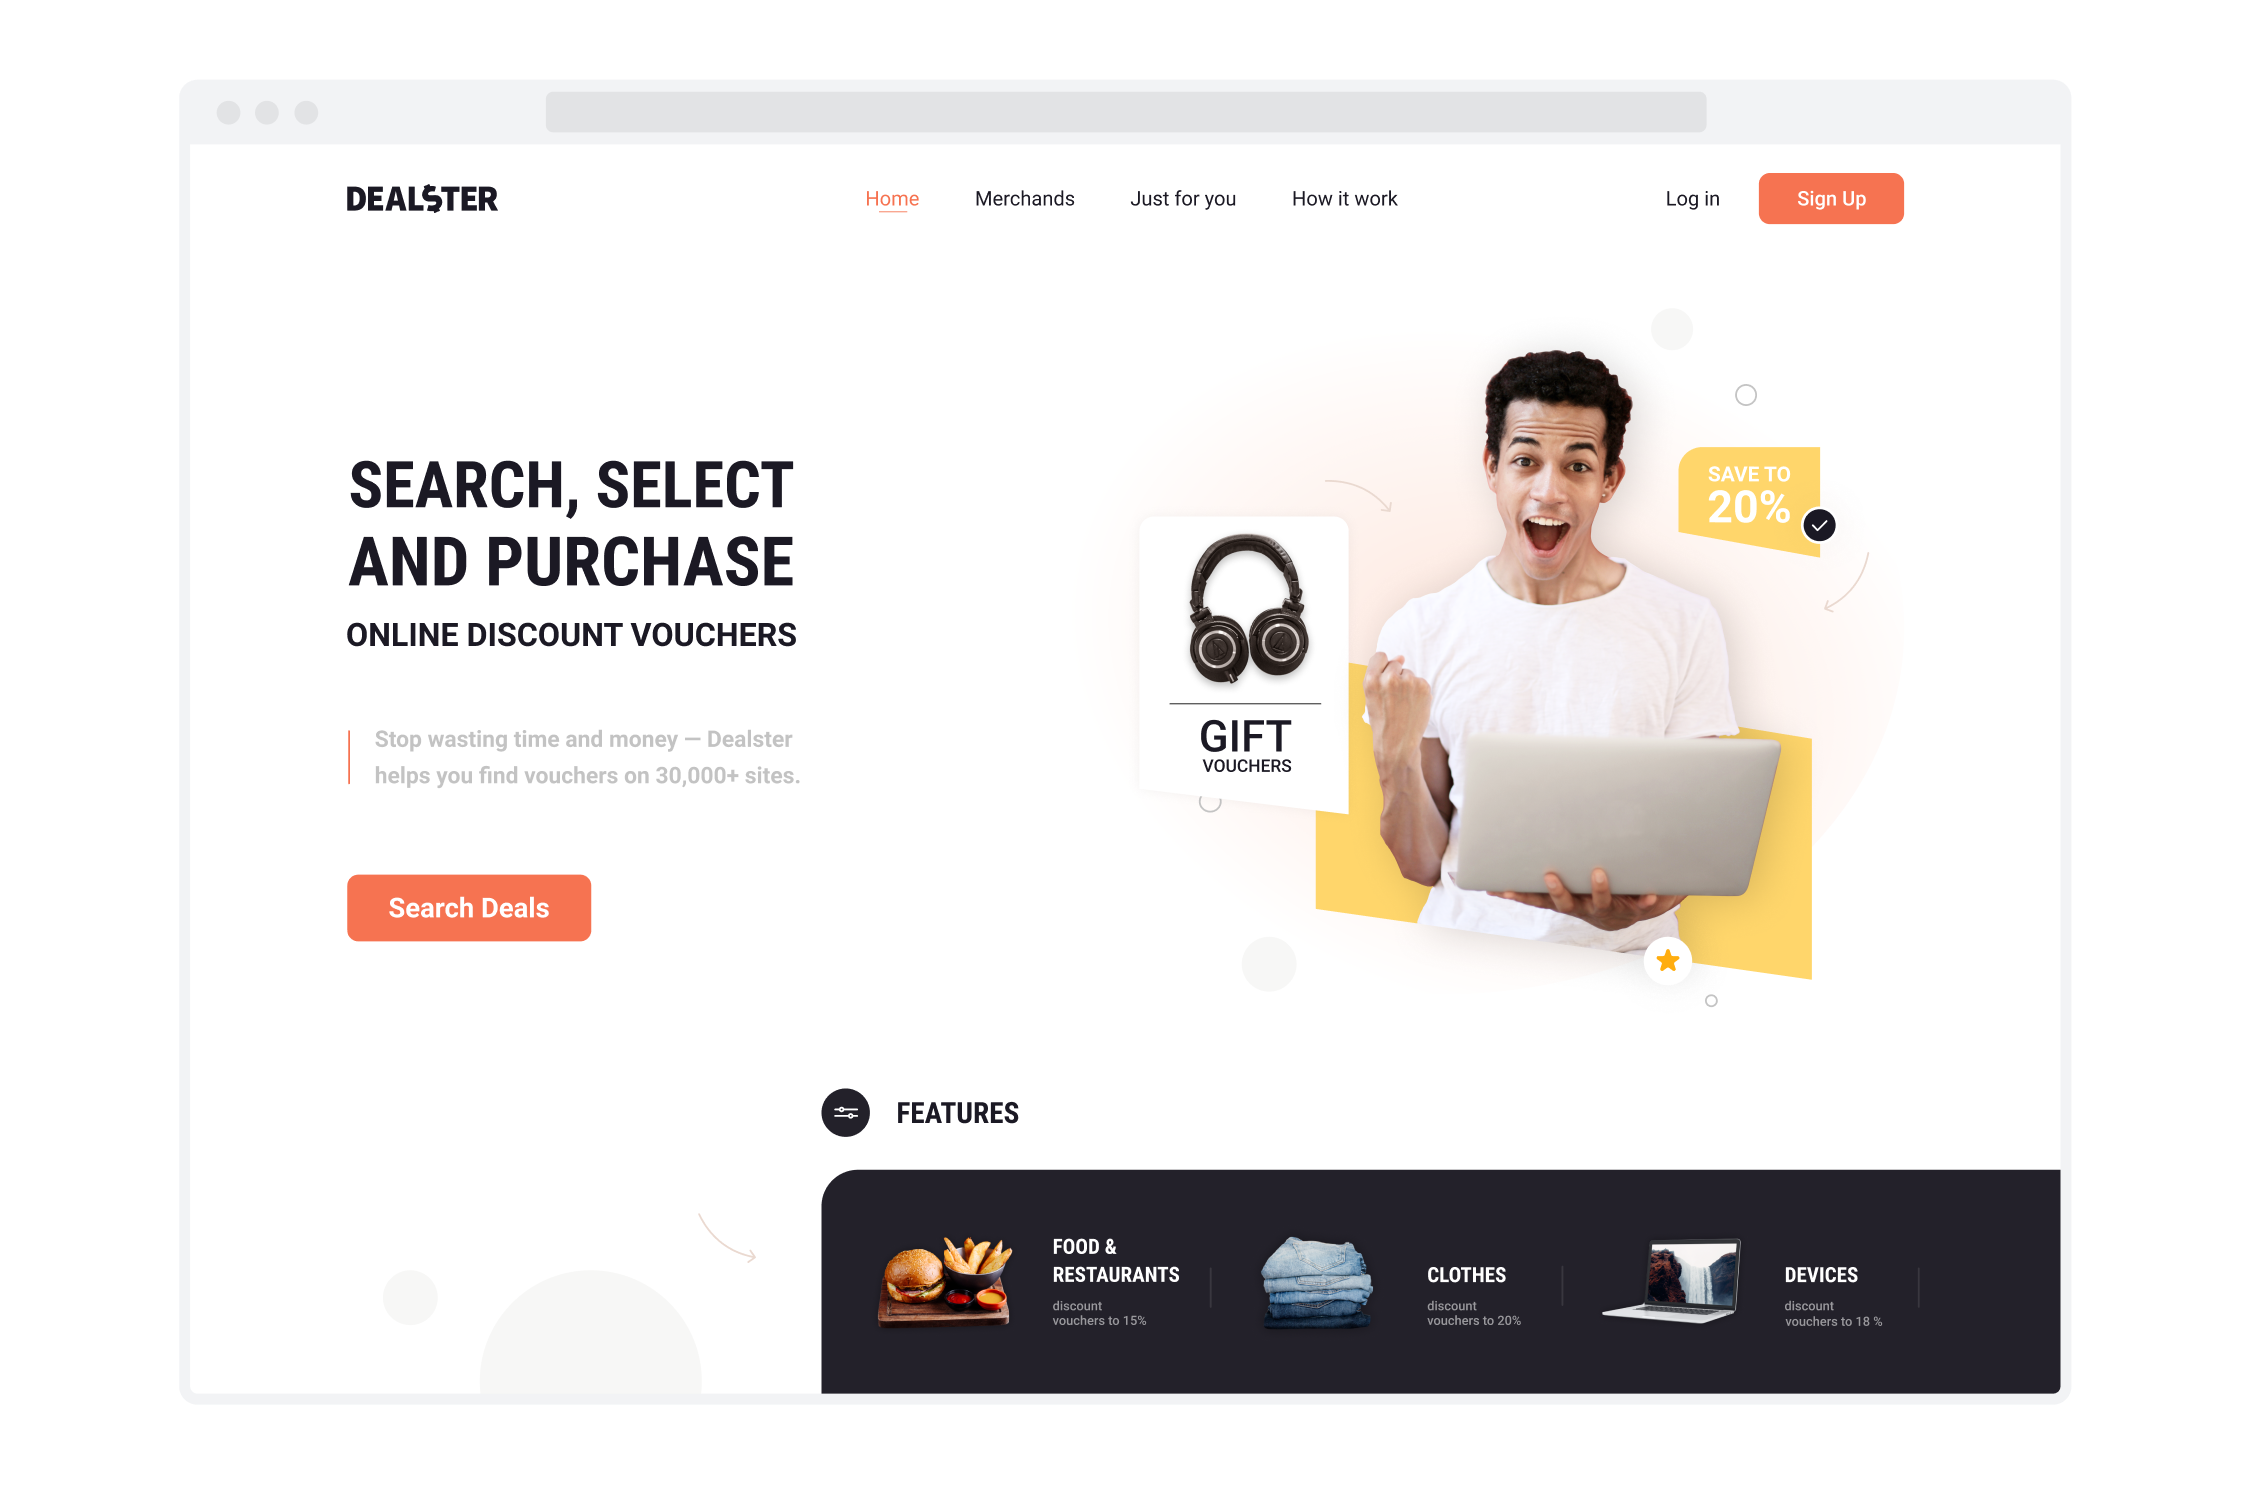 Landing page for Dealster, a voucher aggregator